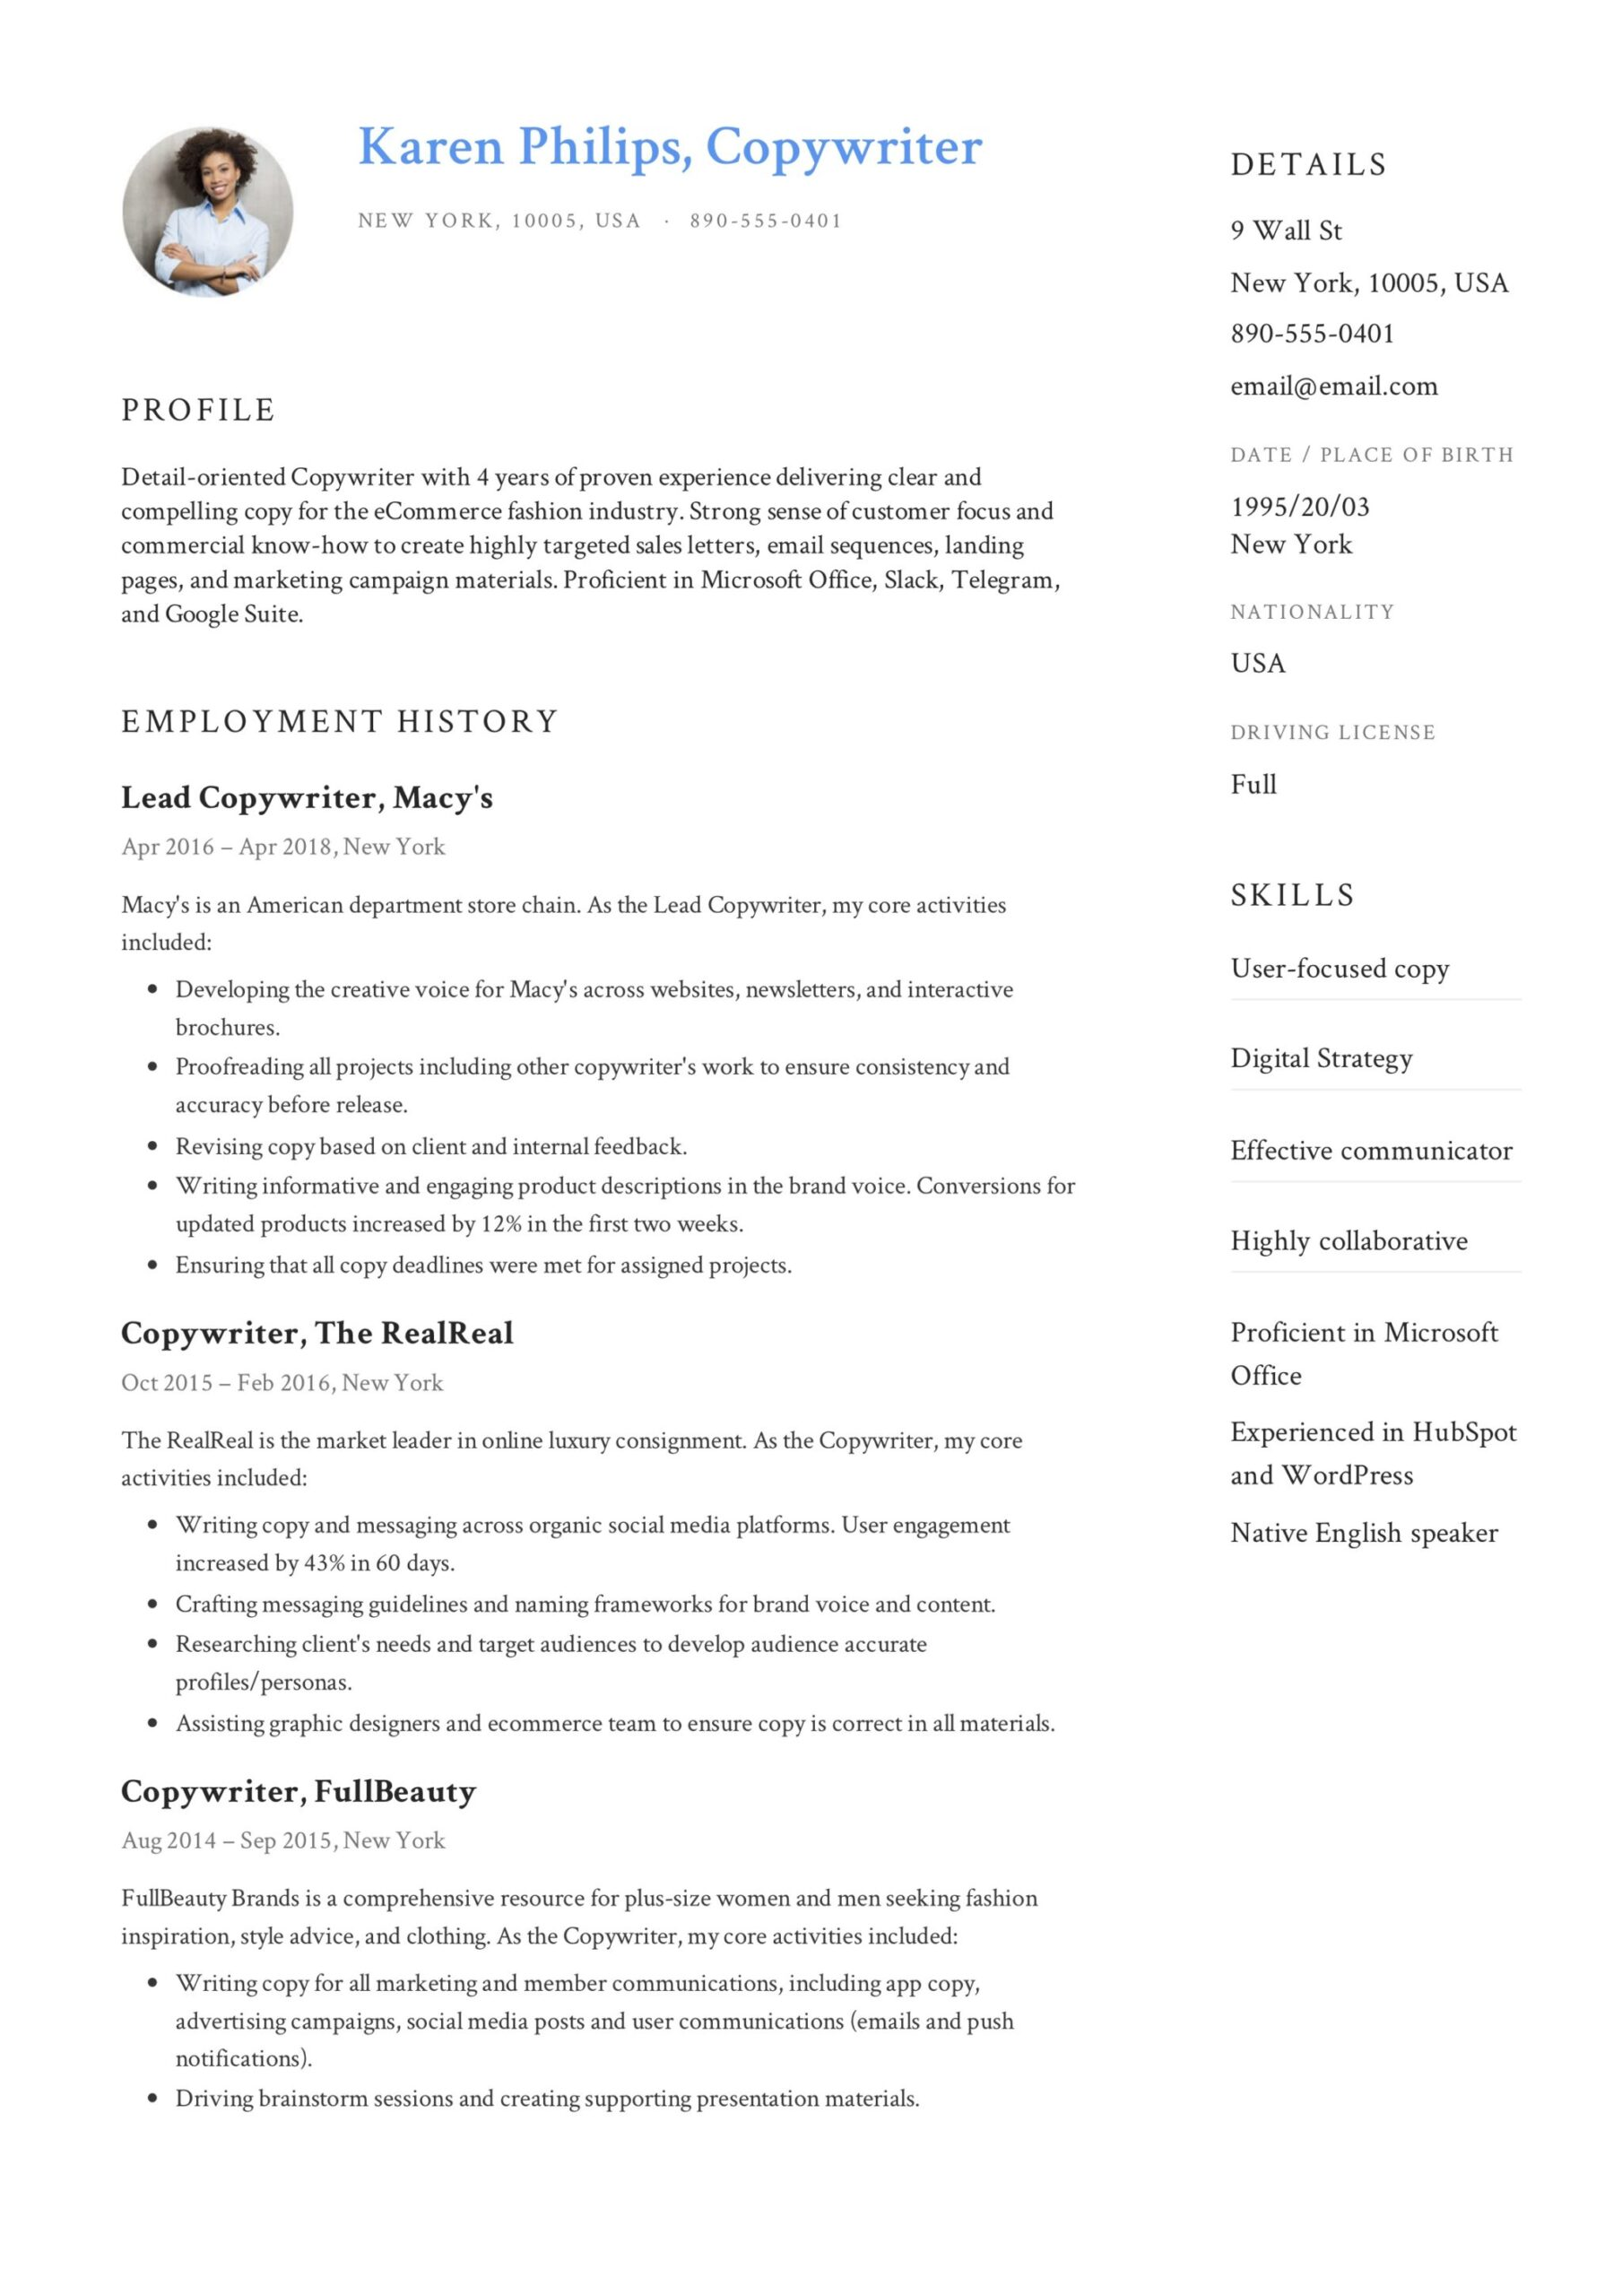 copywriter resume writing guide templates pdf creative example image hd different skills Resume Creative Copywriter Resume Templates